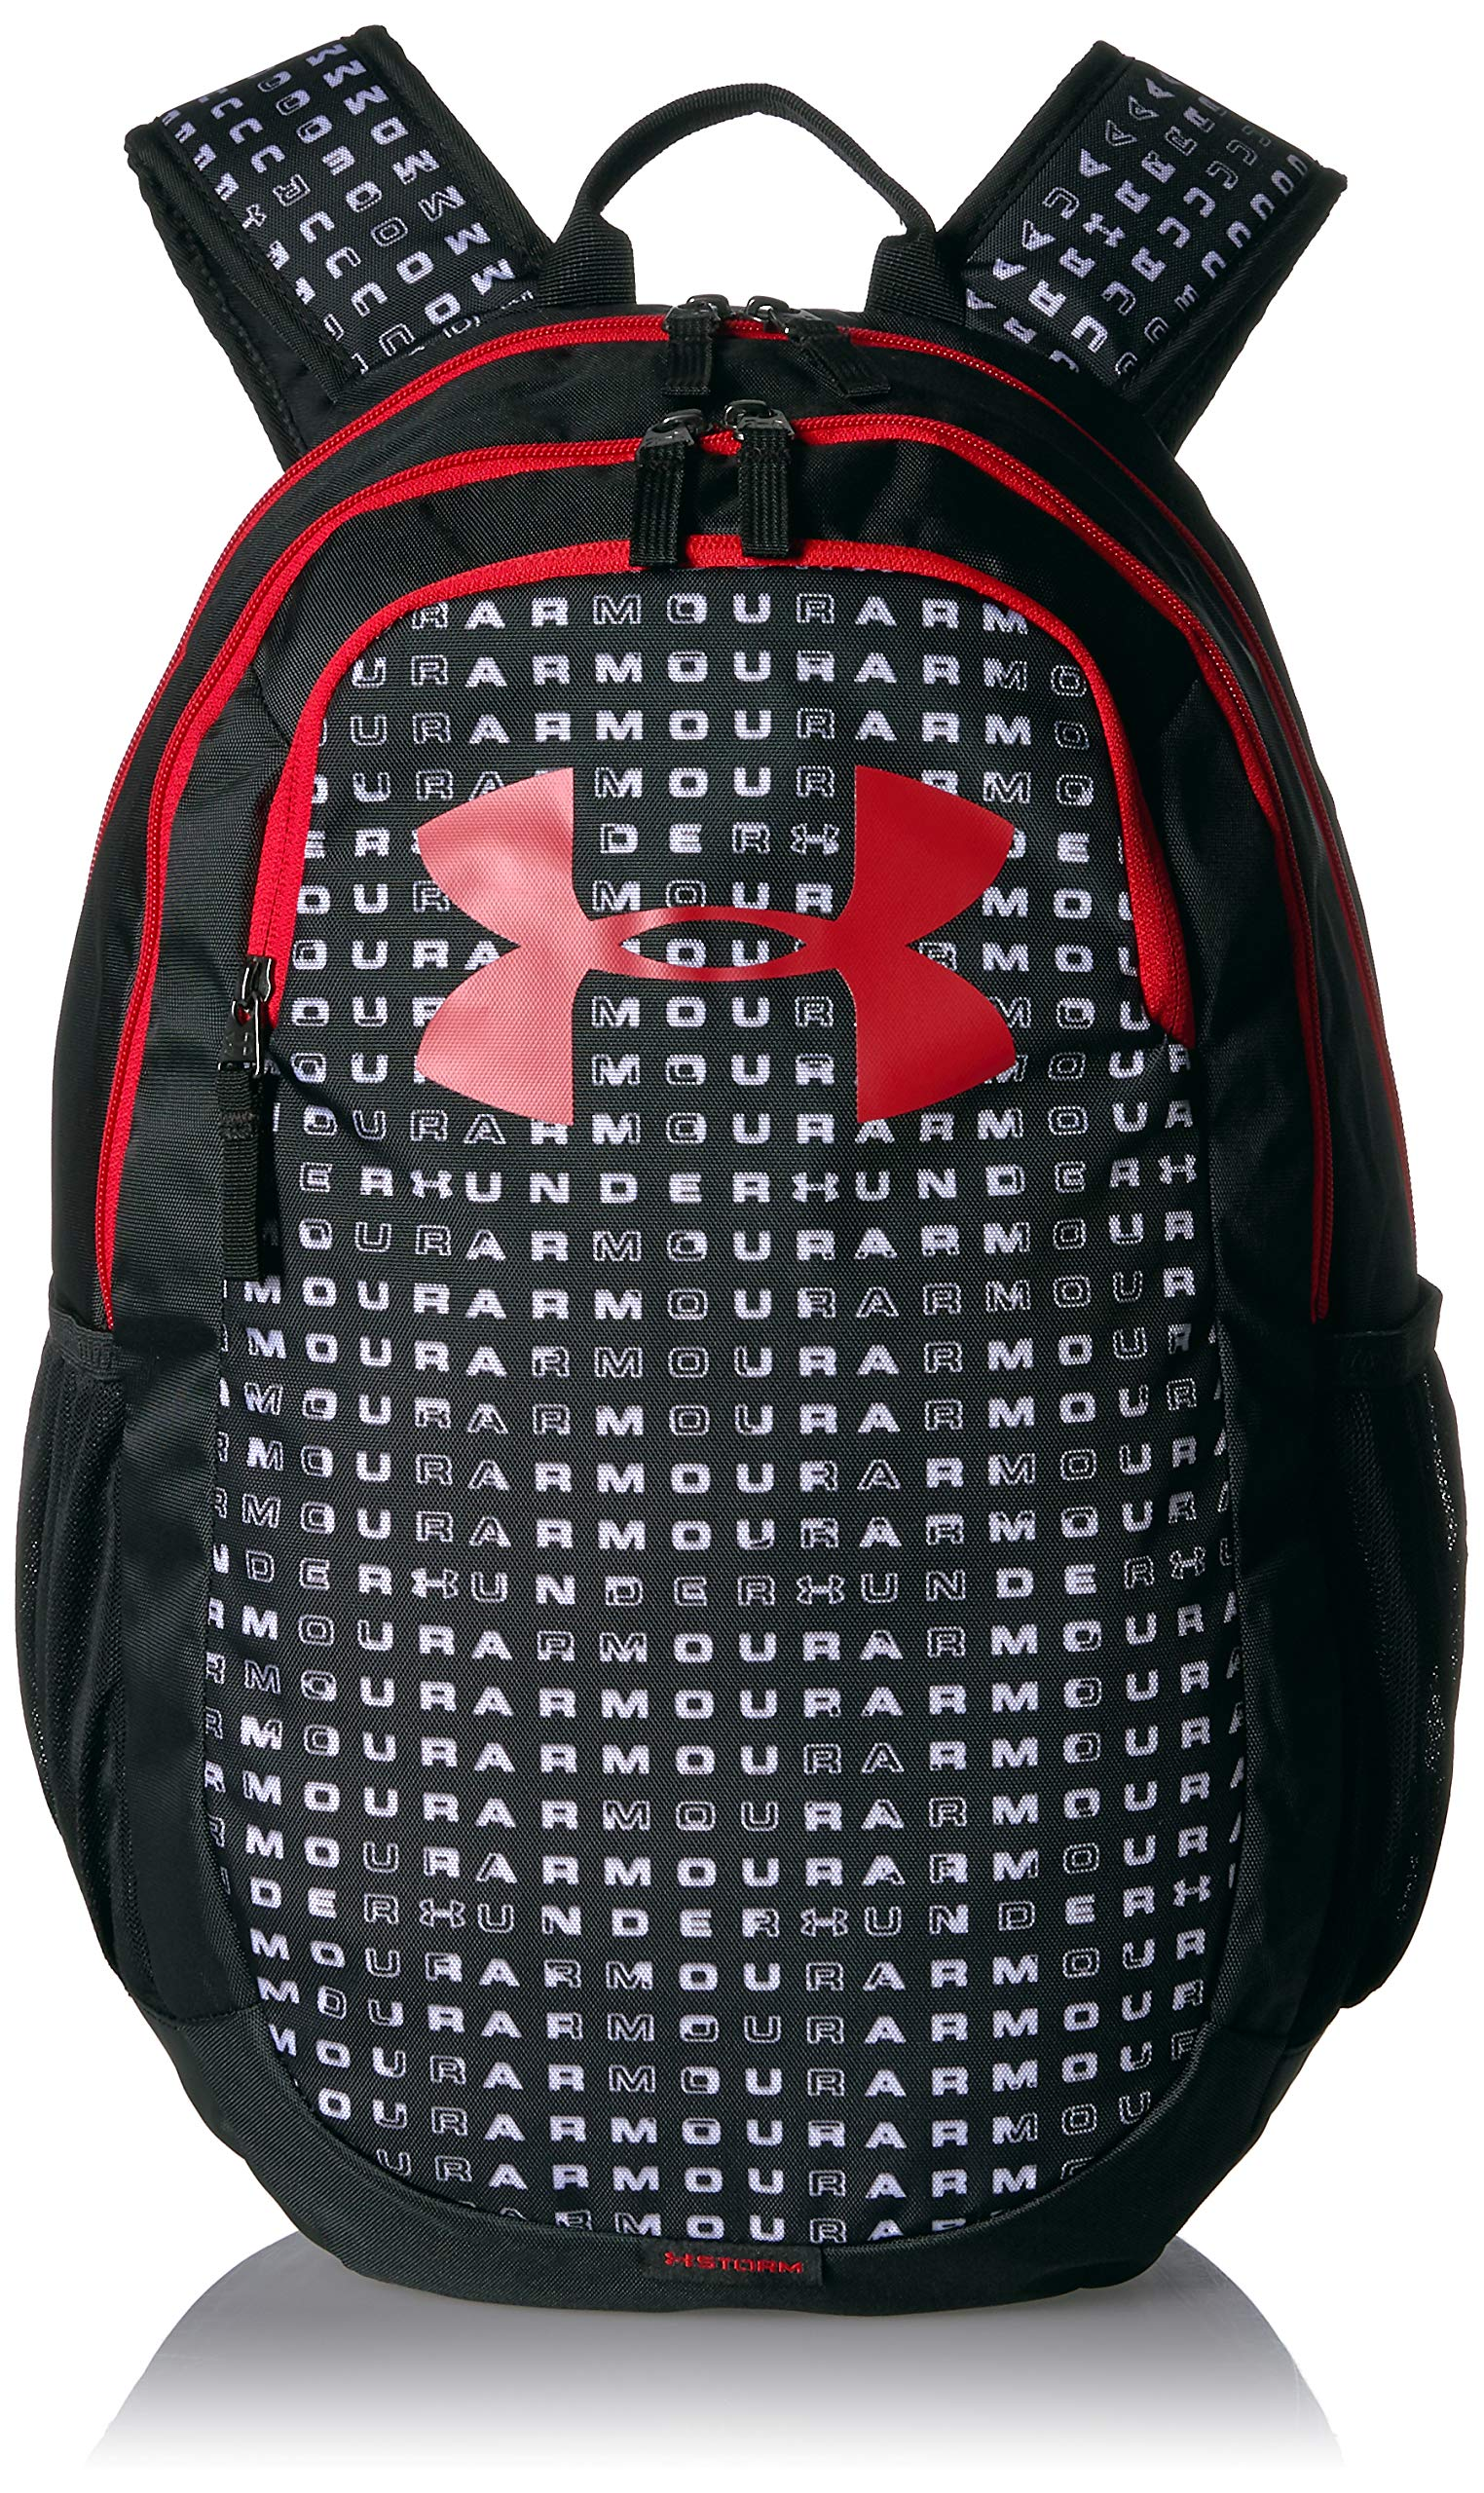 Under Armour Scrimmage Backpack 2.0, Black (002)/Red, One Size Fits All by Under Armour